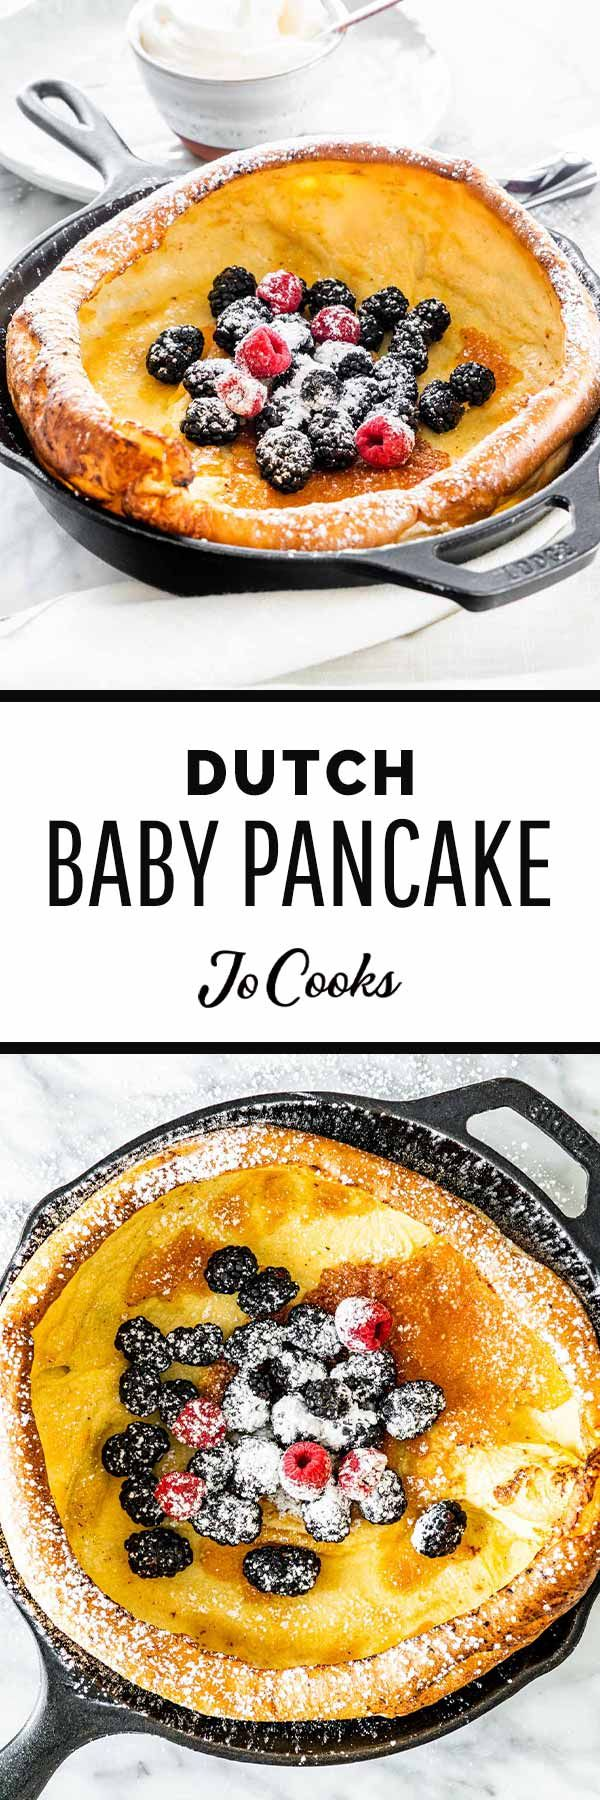 This Dutch baby pancake is large, fluffy and makes for a ...